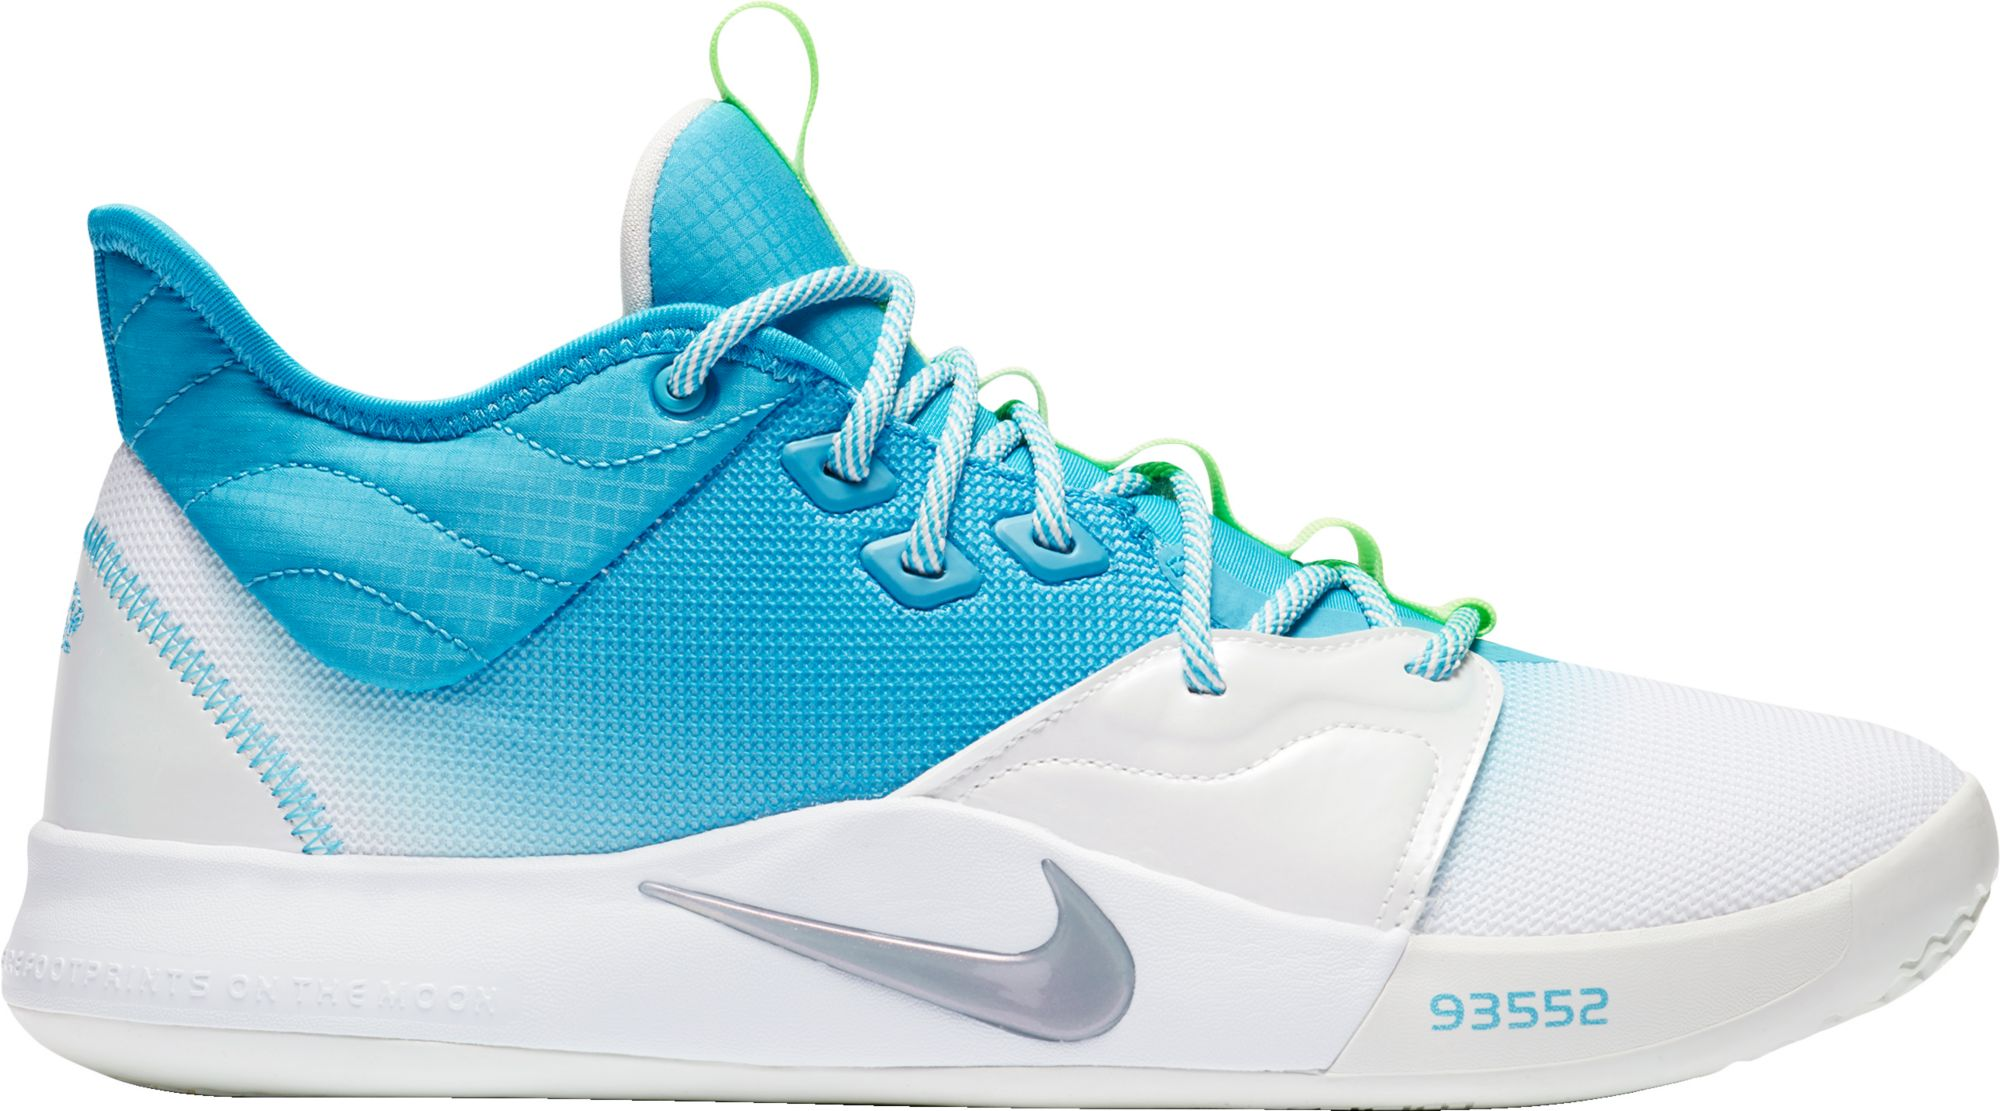 26+ Nike pg3 basketball shoes ideas ideas in 2021